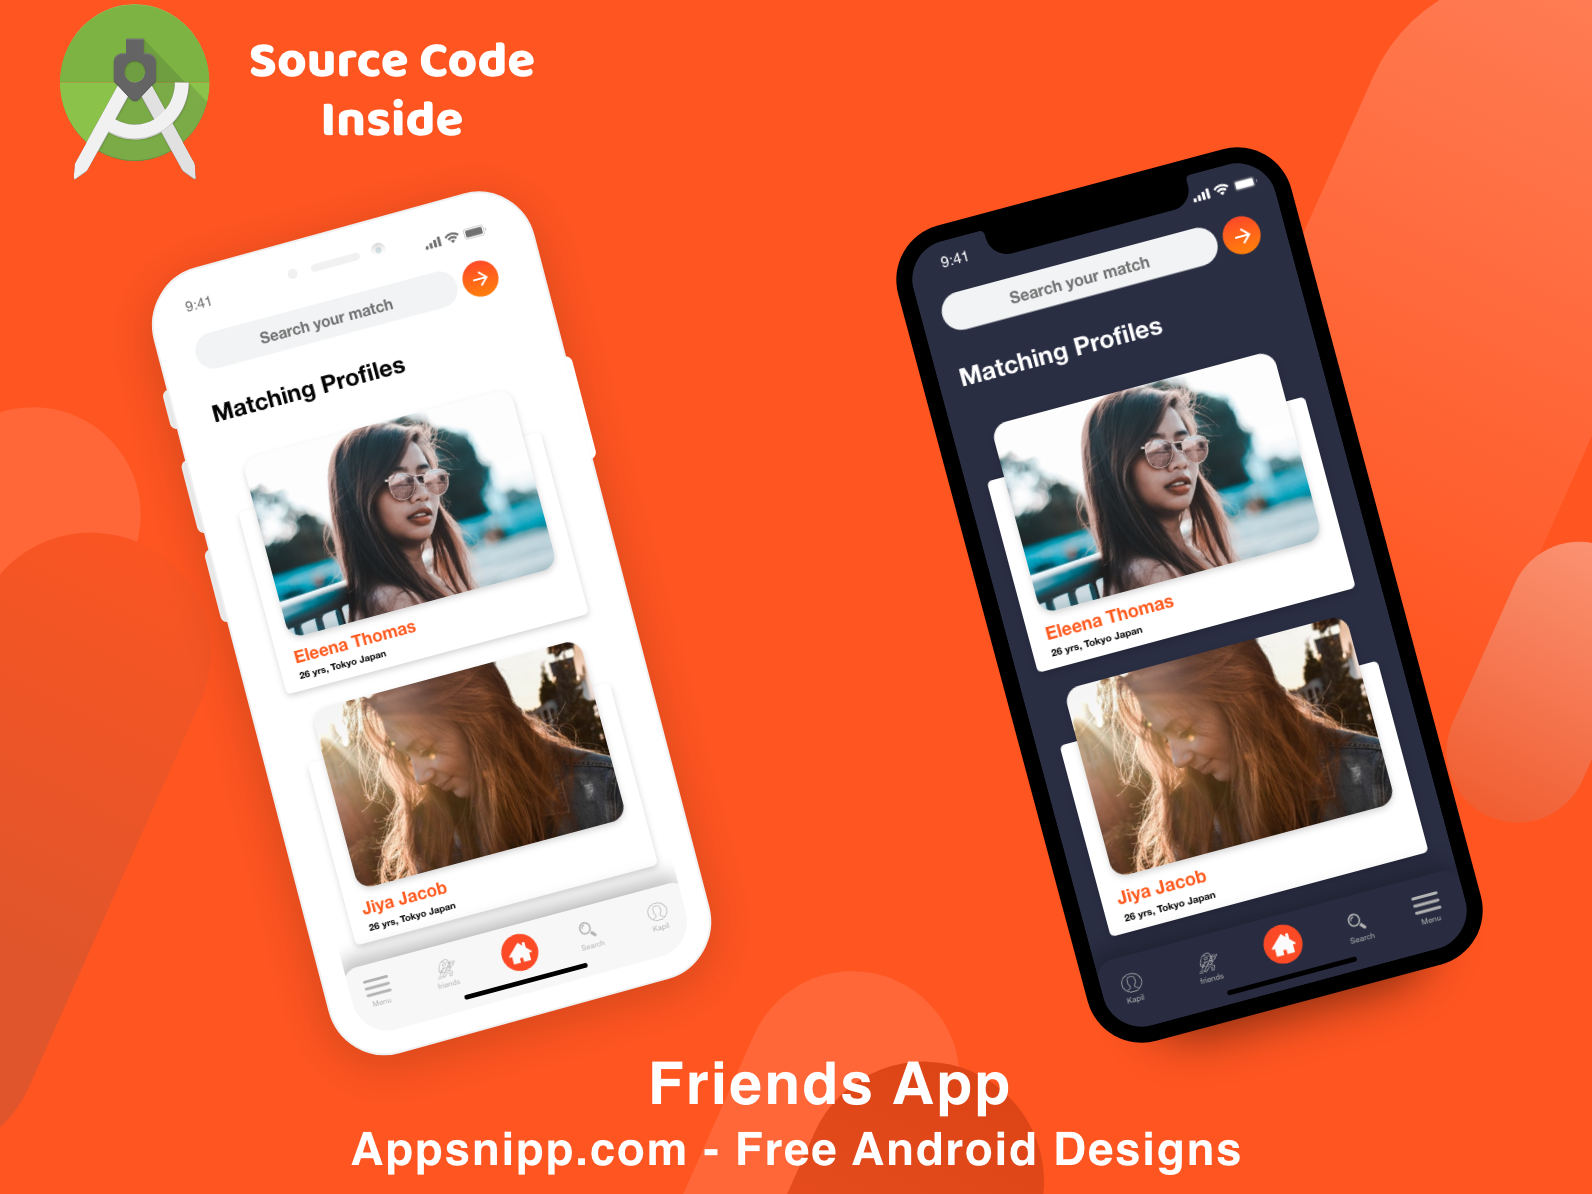 Free dating app with android source code - appsnipp dark mode minimal ios ux ui design app modern android app apps design appsnipp